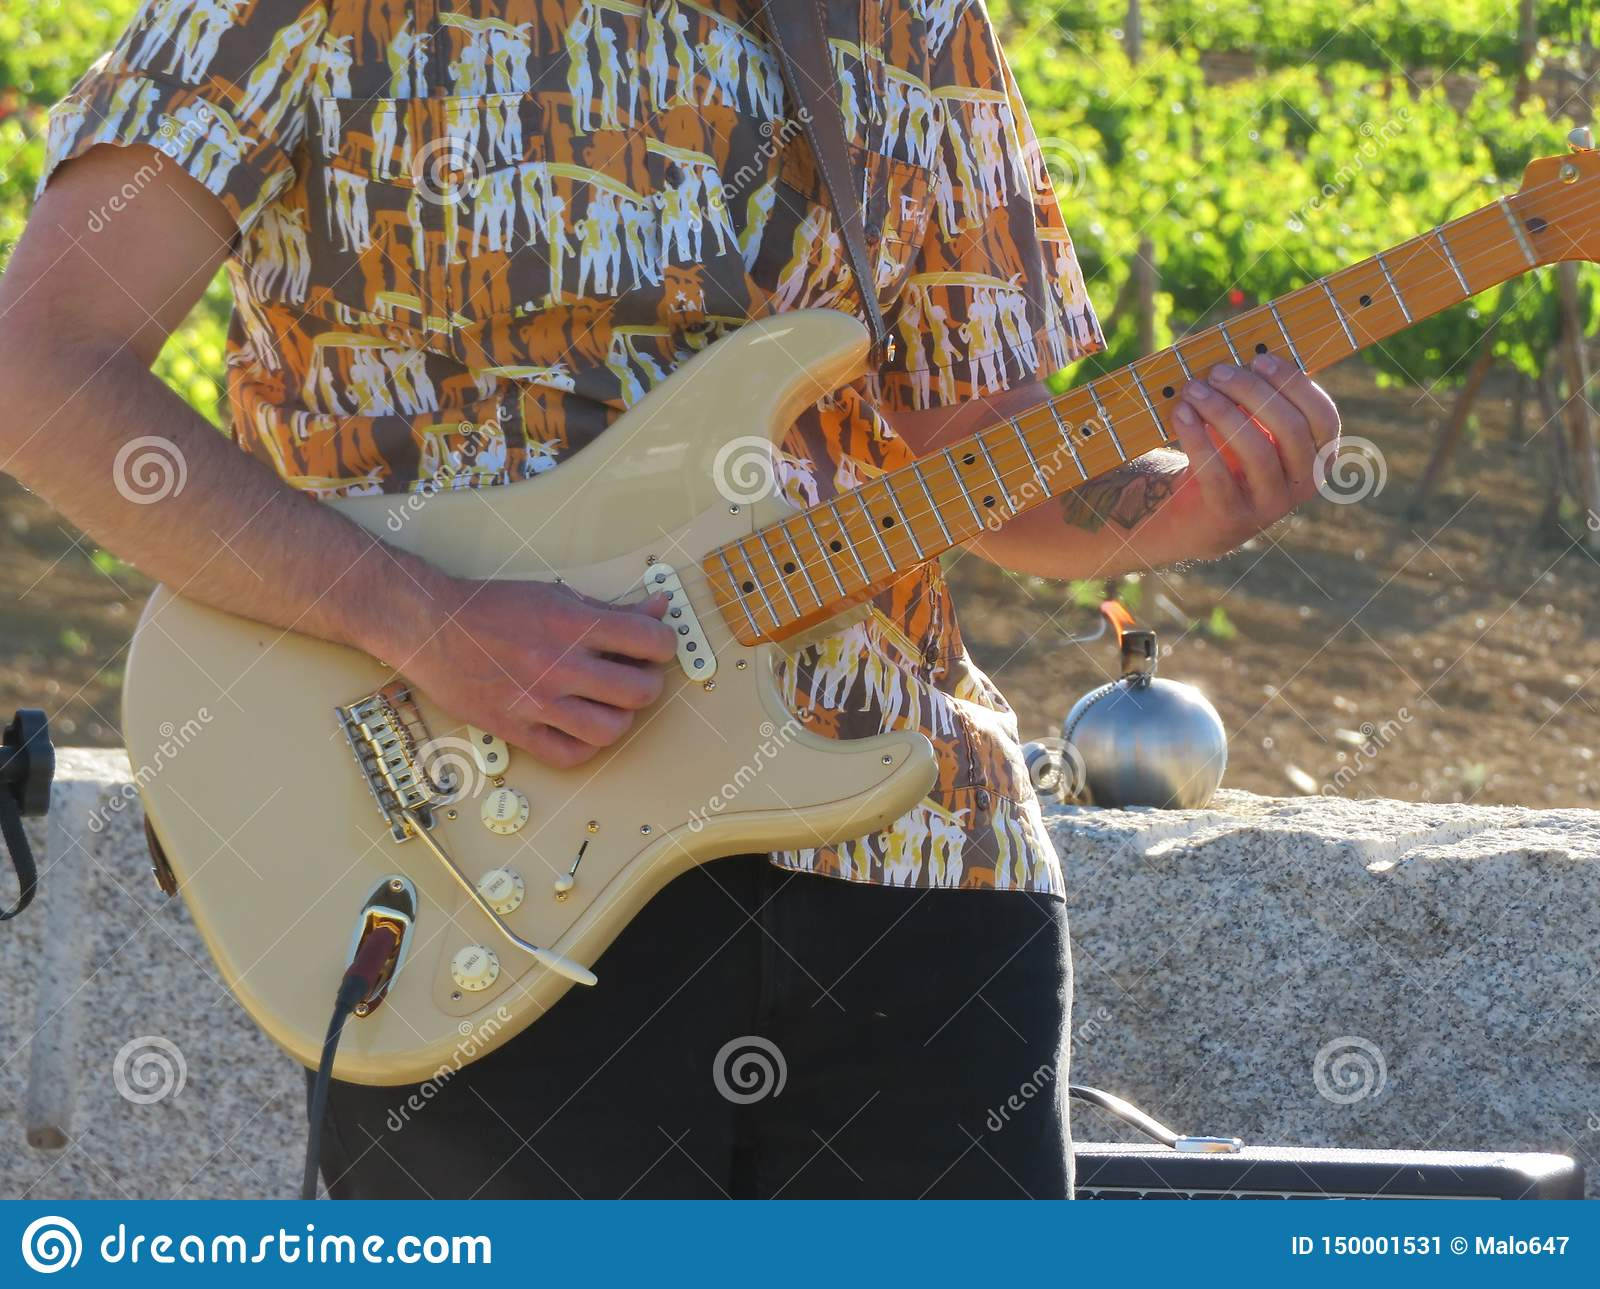 A musician playing the guitar composing beautiful songs